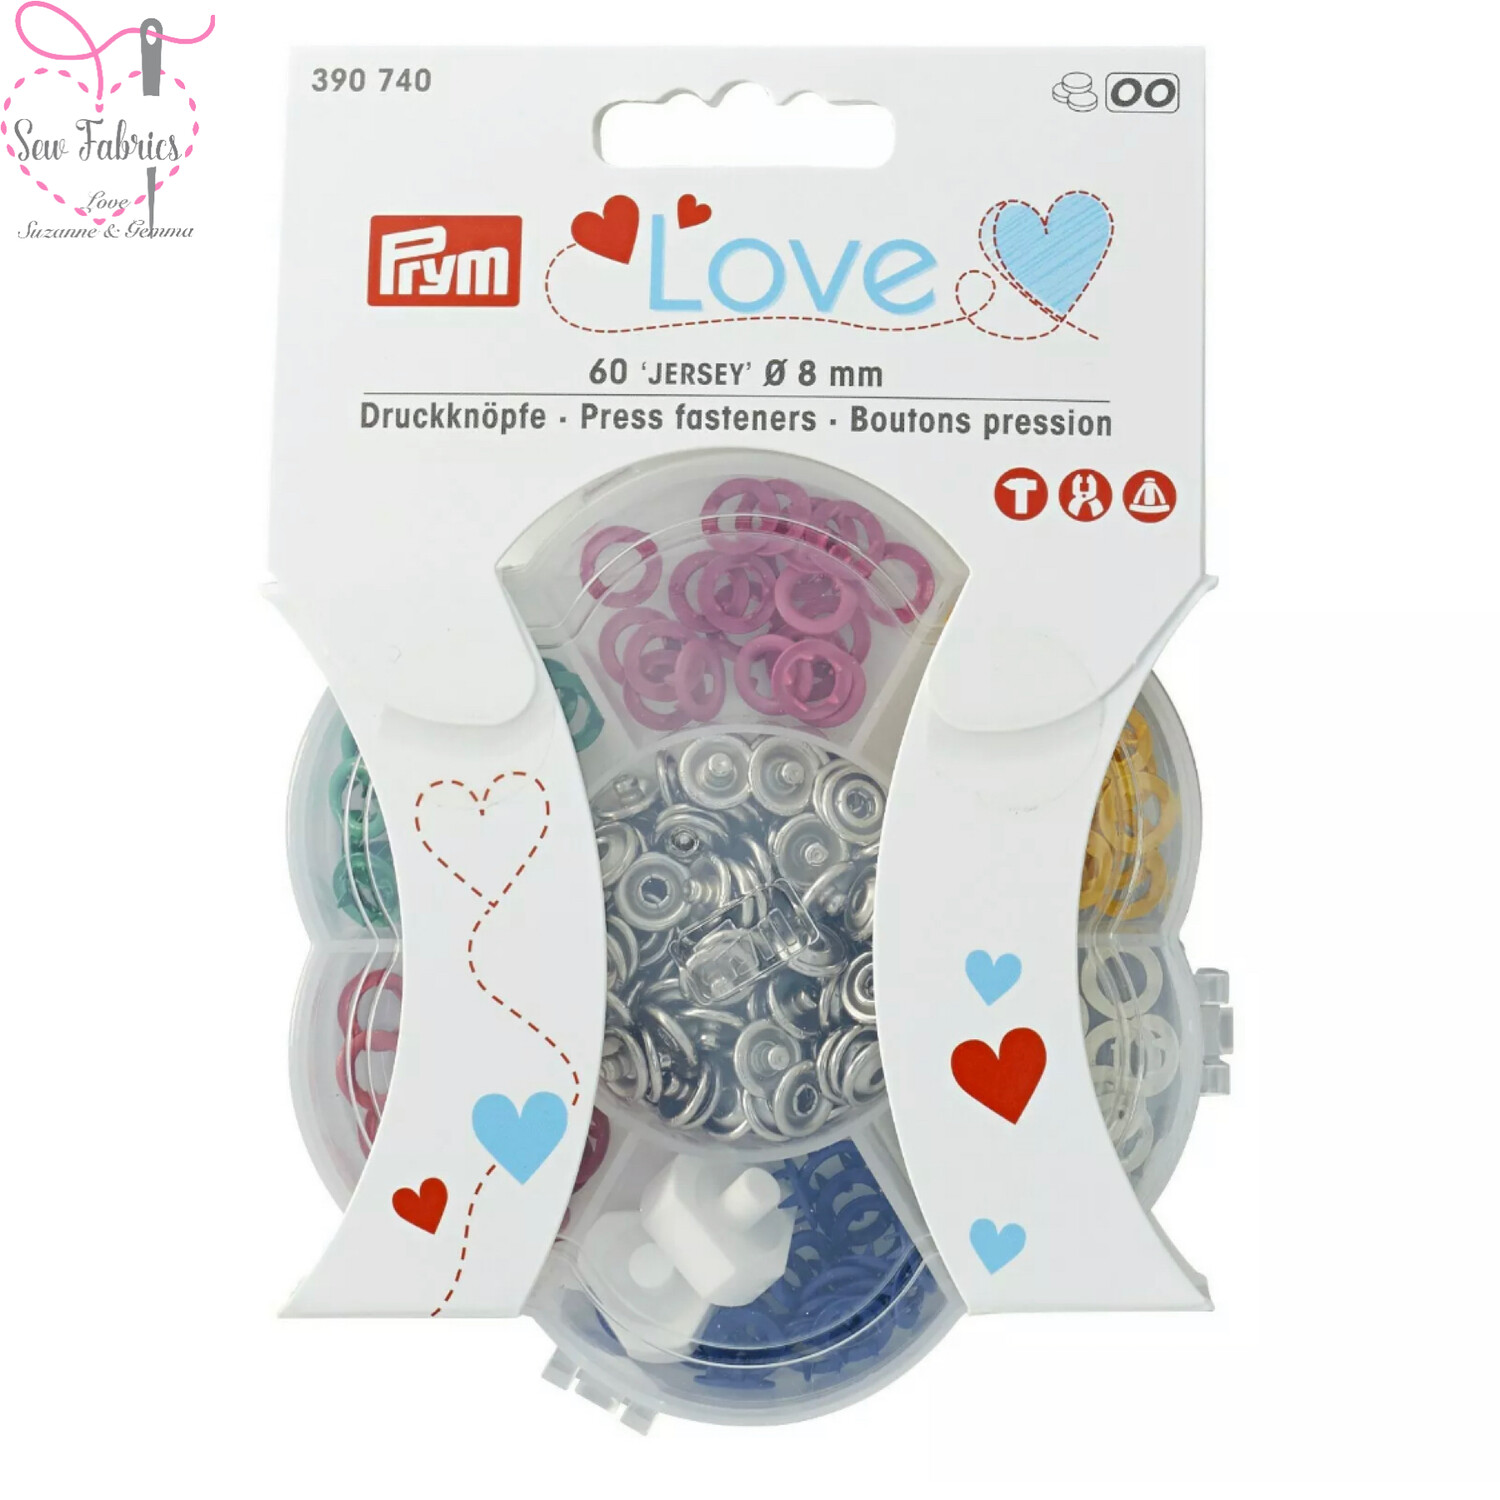 Prym Love Snap / Press Fasteners, Jersey 8mm in 6 colours. 60 pieces in organiser. Assorted Colours Press Studs for Dressmaking and Crafting.